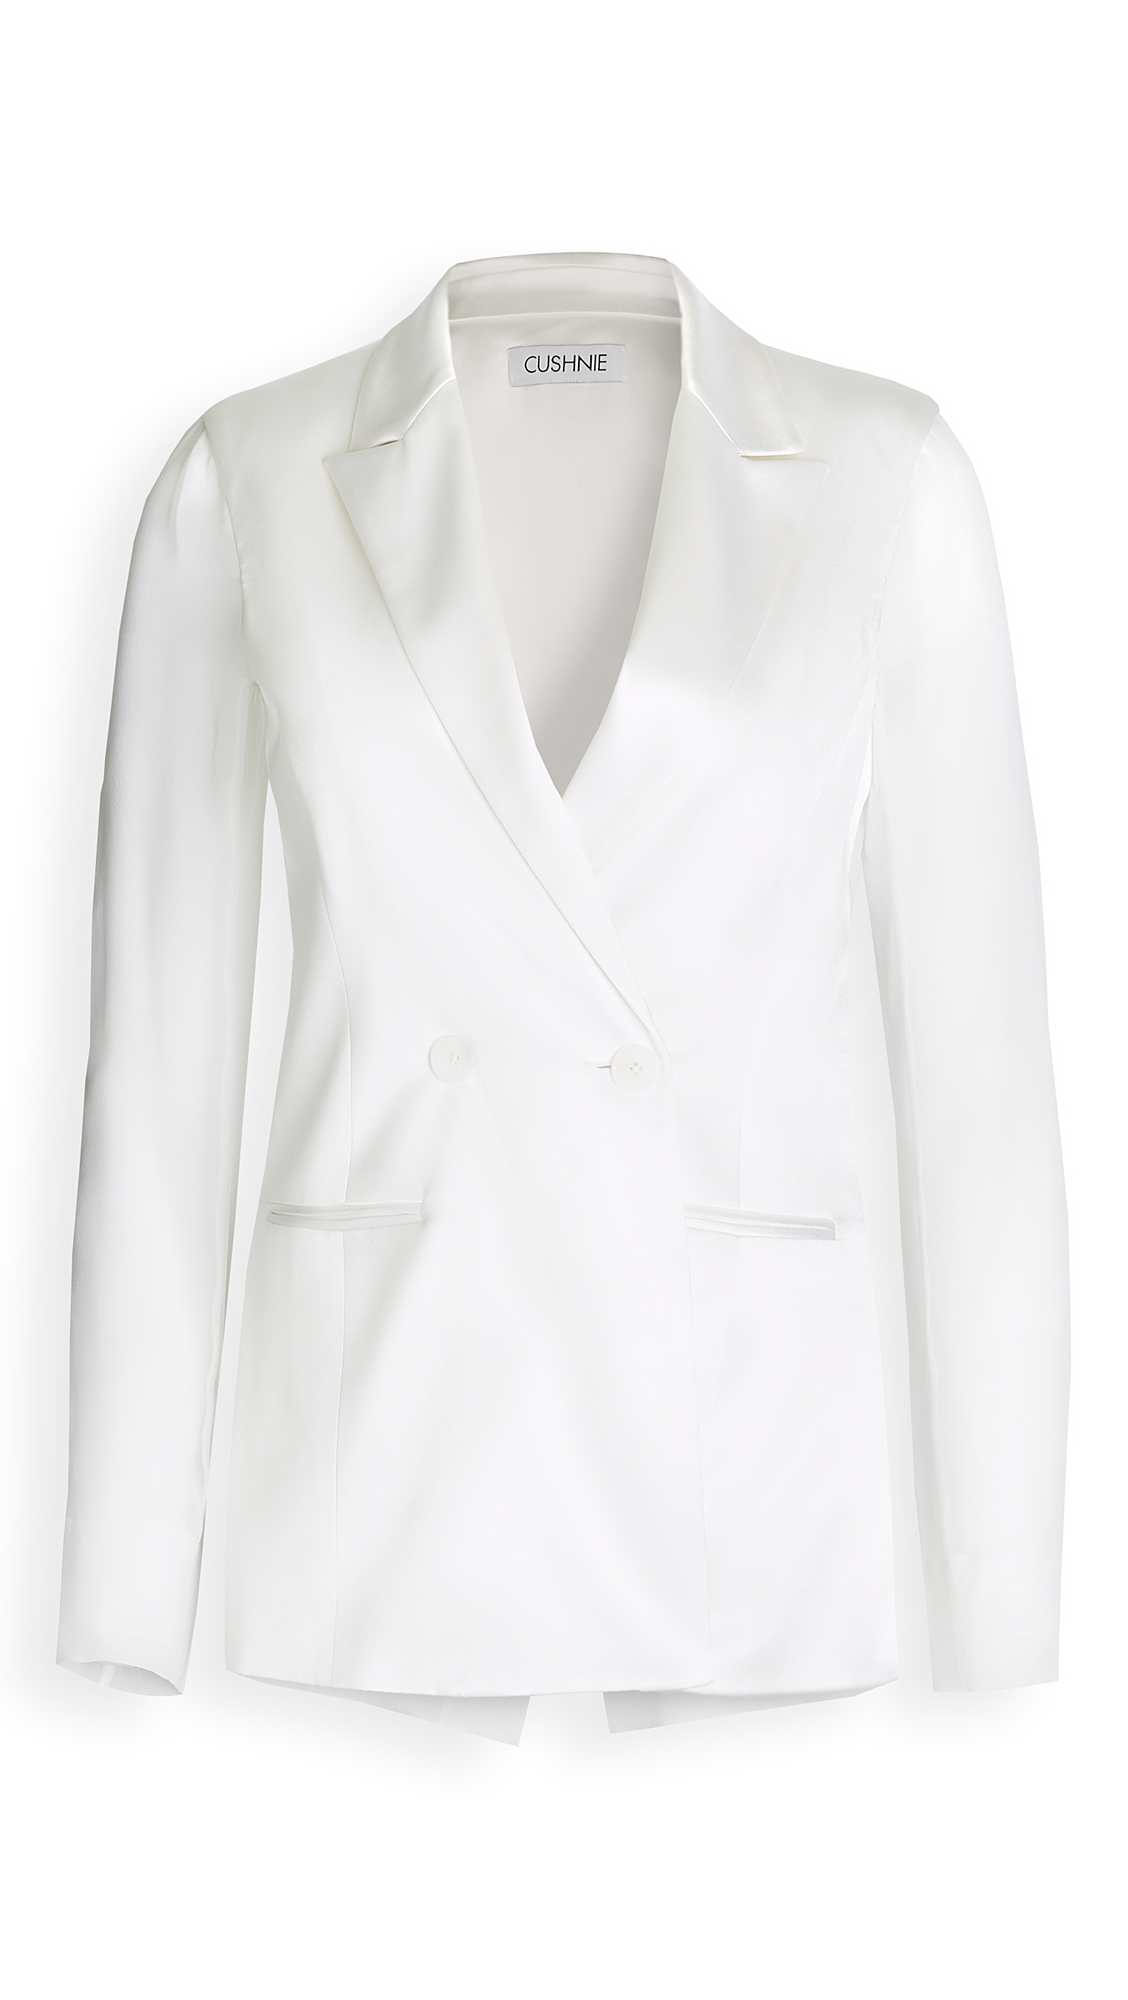 Cushnie Double Breasted Jacket with Chiffon Sleeves & Back